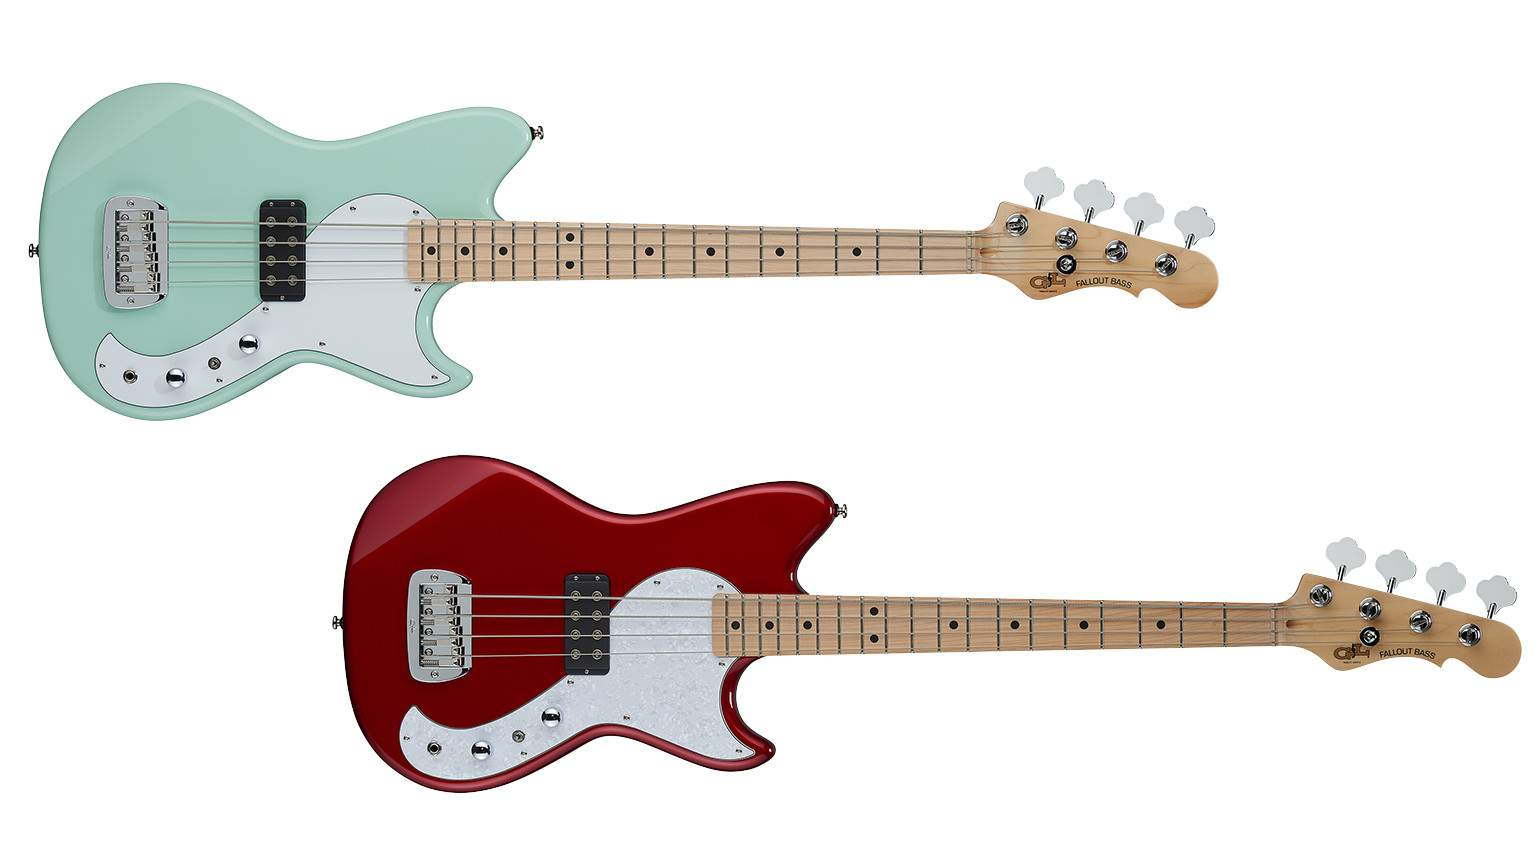 gl-tribute-fallout-shortscale-bass-candy-apple-red-surf-green.jpeg